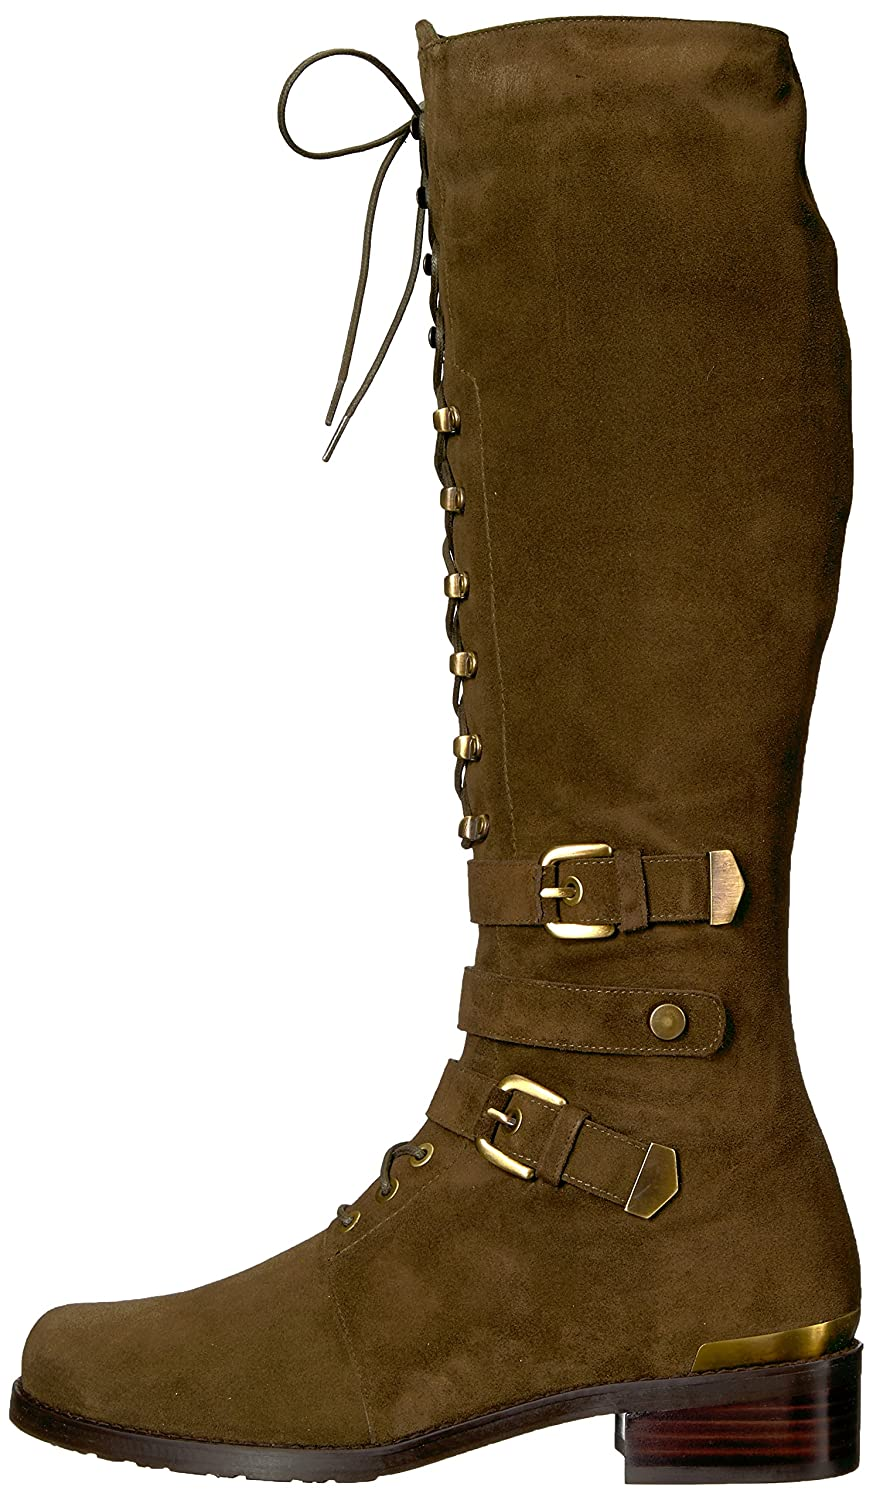 9e2fe7bcf15 Stuart Weitzman Women s Policelady Knee High Boot  Buy Online at Low Prices  in India - Amazon.in